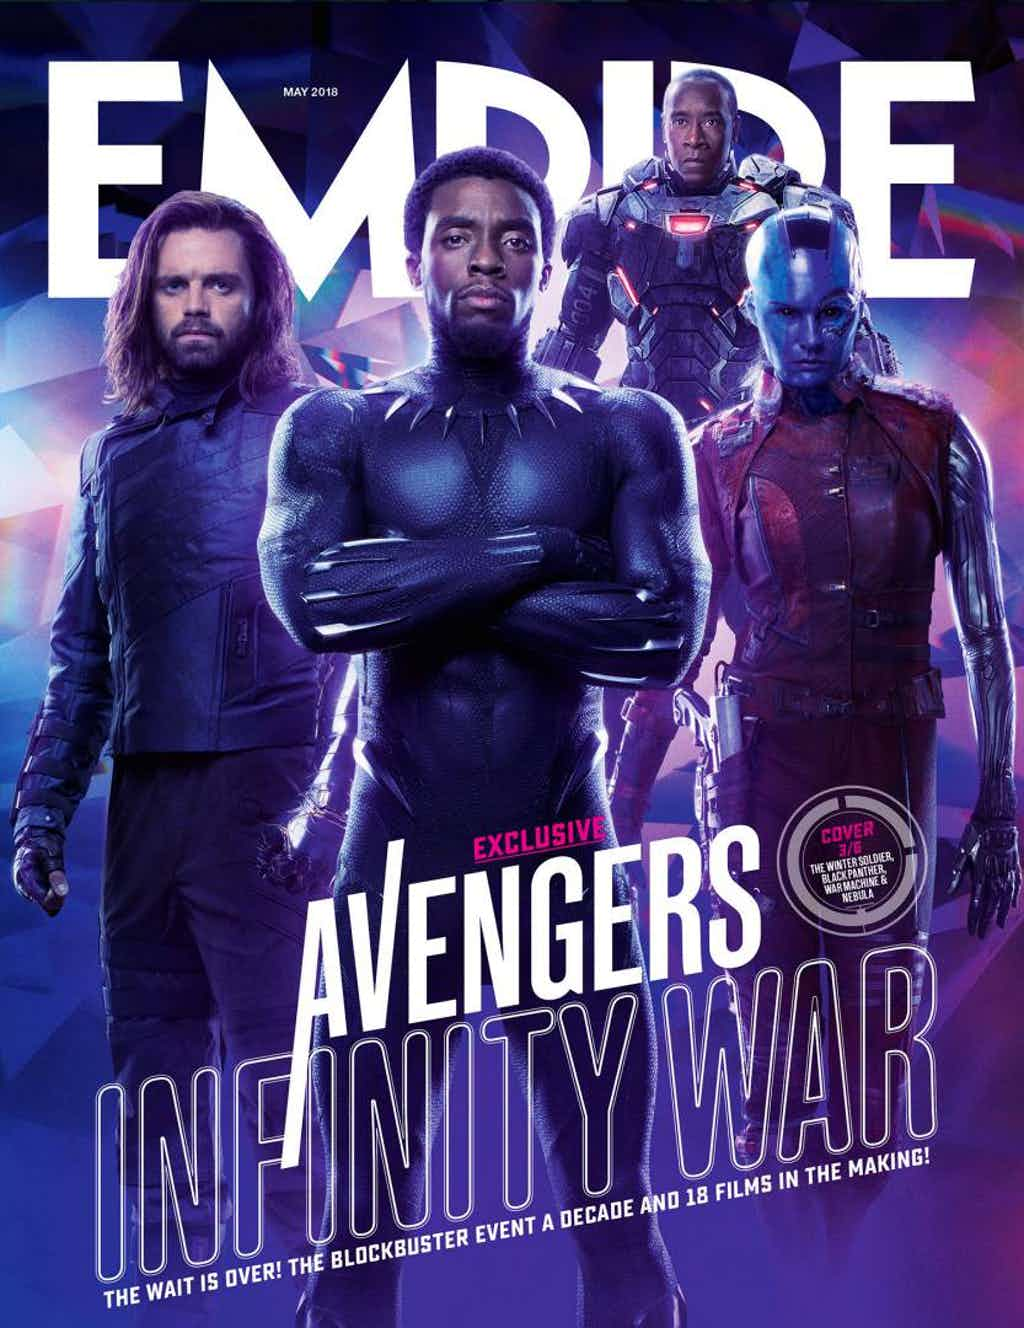 Bucky, Black Panther, War Machine, Nebula - okładka Empire